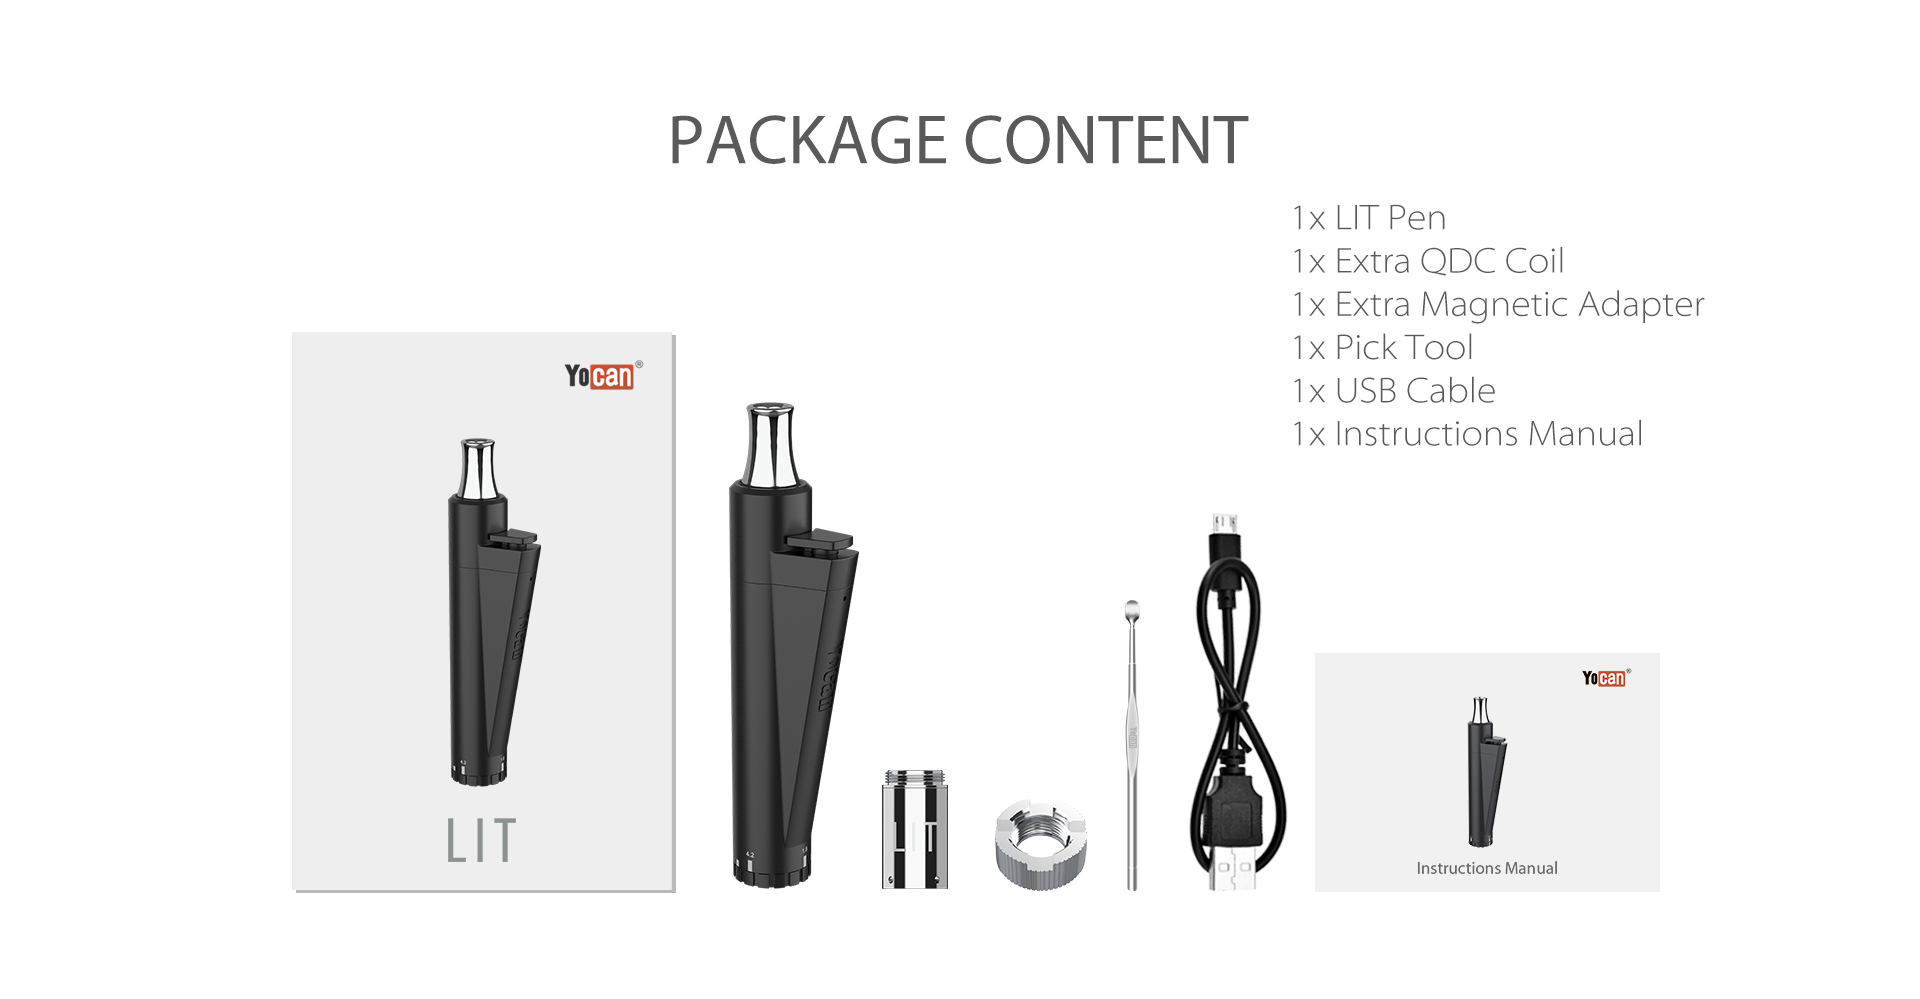 The package content of Yocan Lit Twist Concentrate Vaporizer